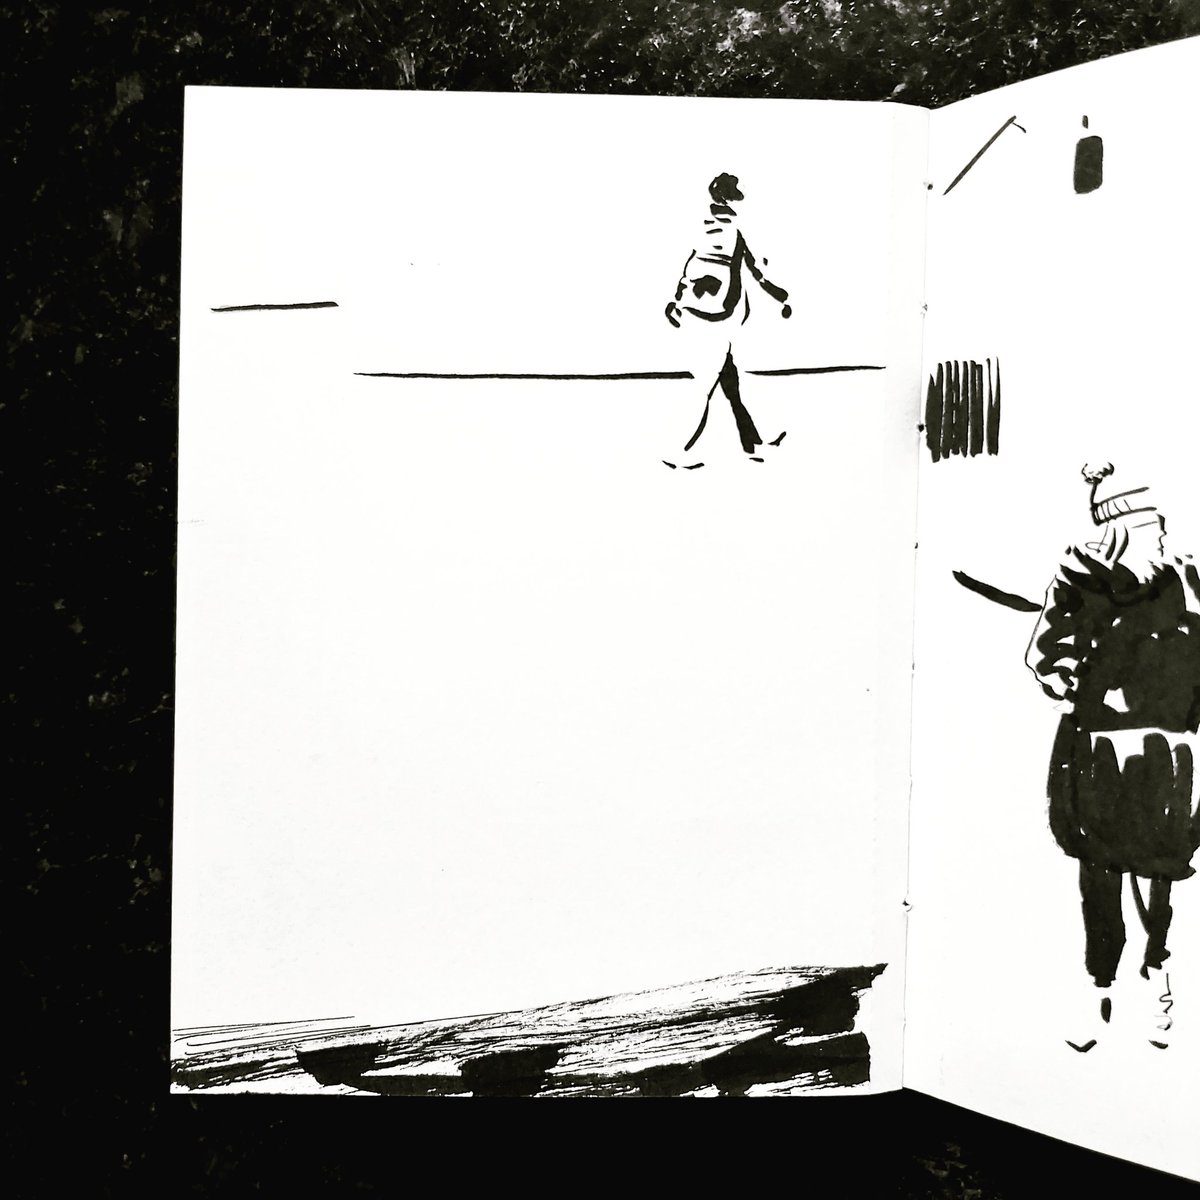 From the Inside 2 Day 108 (257 total) #isolation study Kitchen window Passerby No 147 #isolationlife #stayathome #lockdown #lockdown2uk #sketchbook #sketch #drawing #draw #doodle #ink #lineart #lifedrawing #figuredrawing #walk #artoftheday #art #artwork #artist #illustration